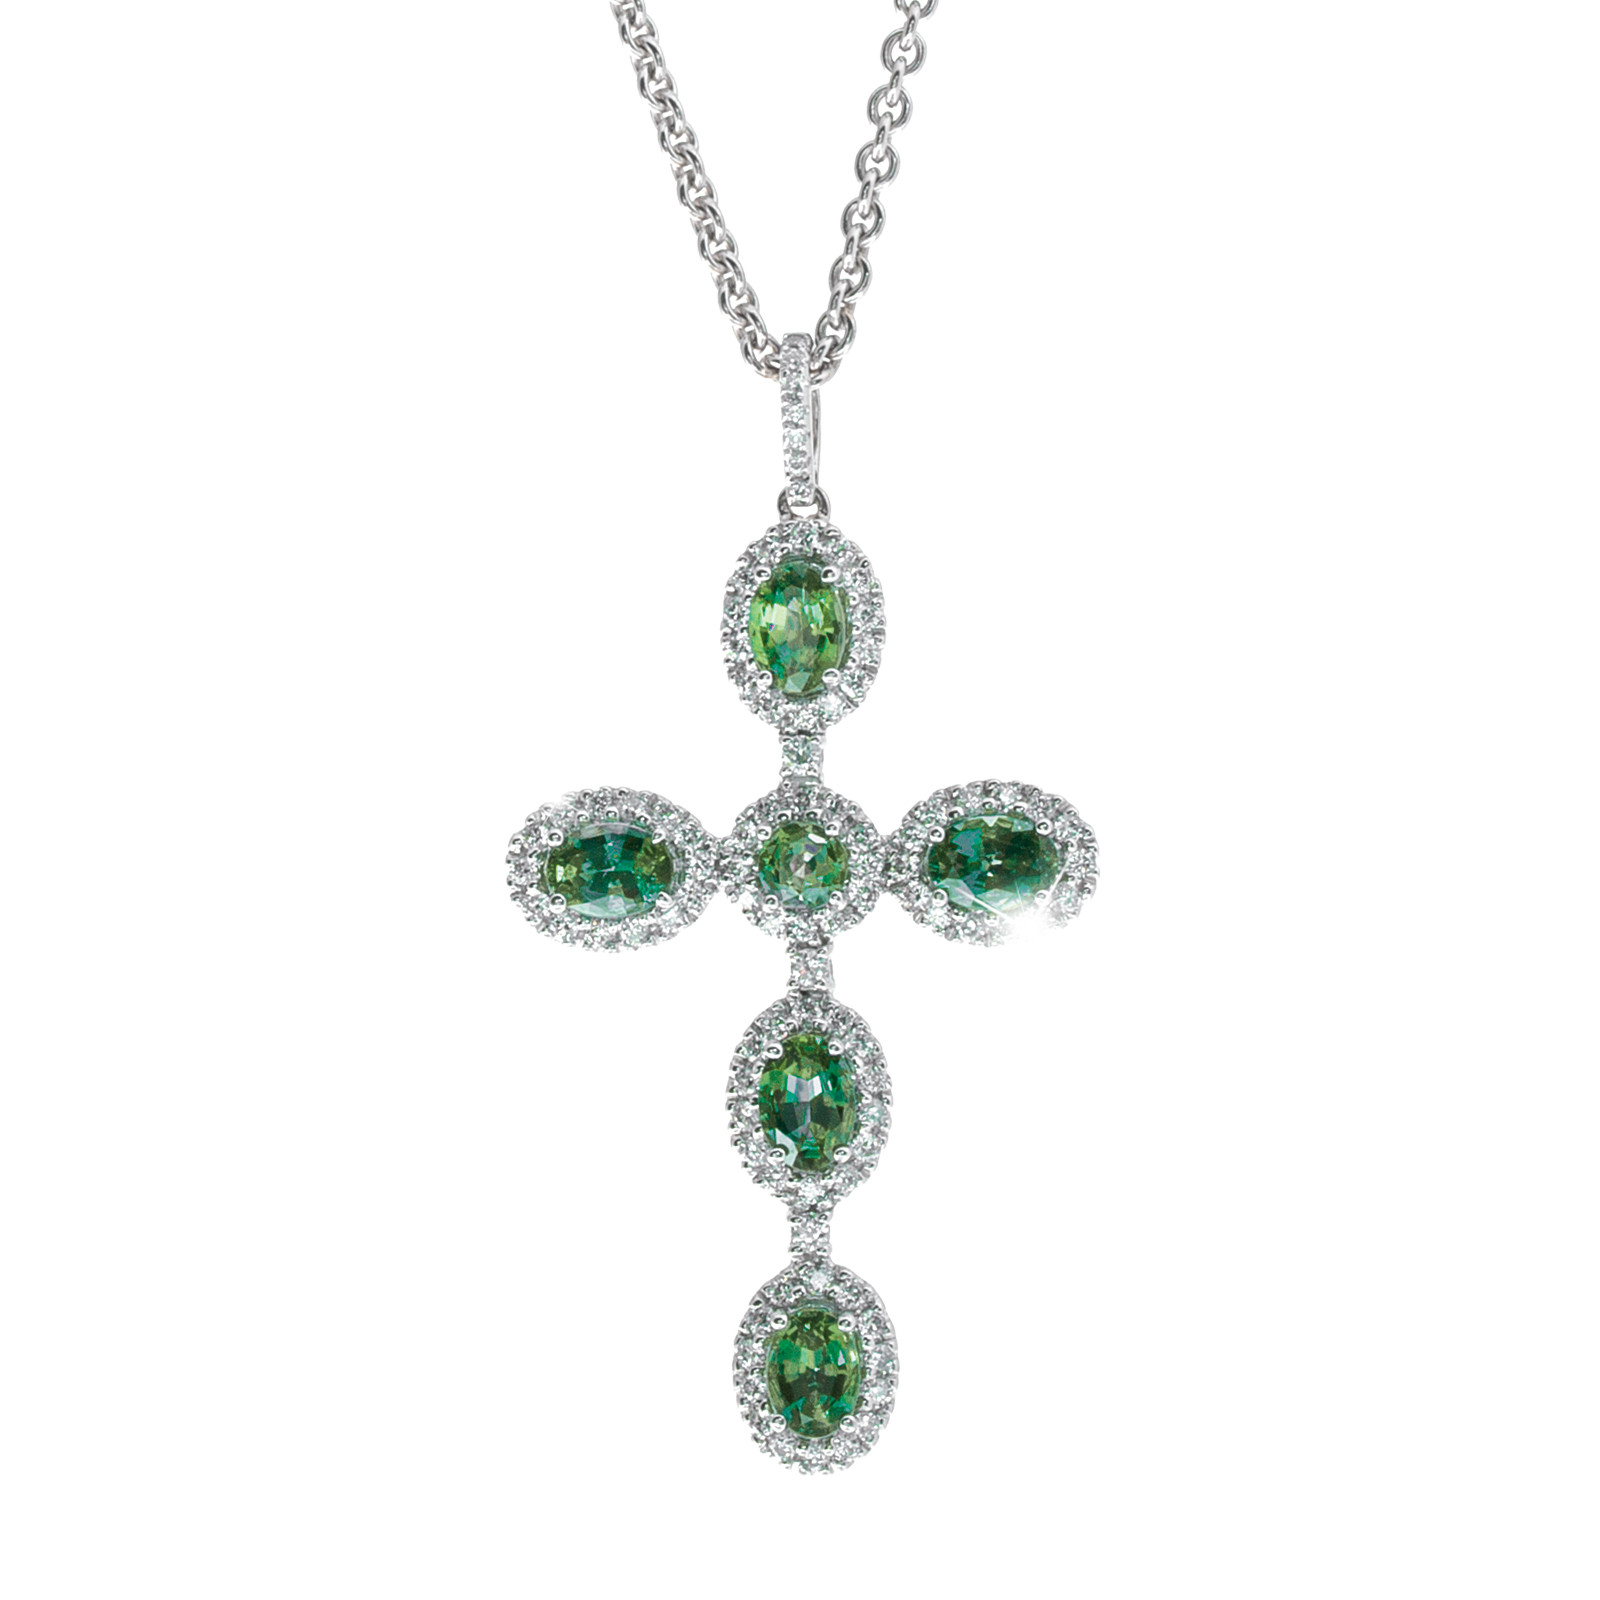 necklace mi details mikimoto christie s by lotfinder hgk an lot alexandrite